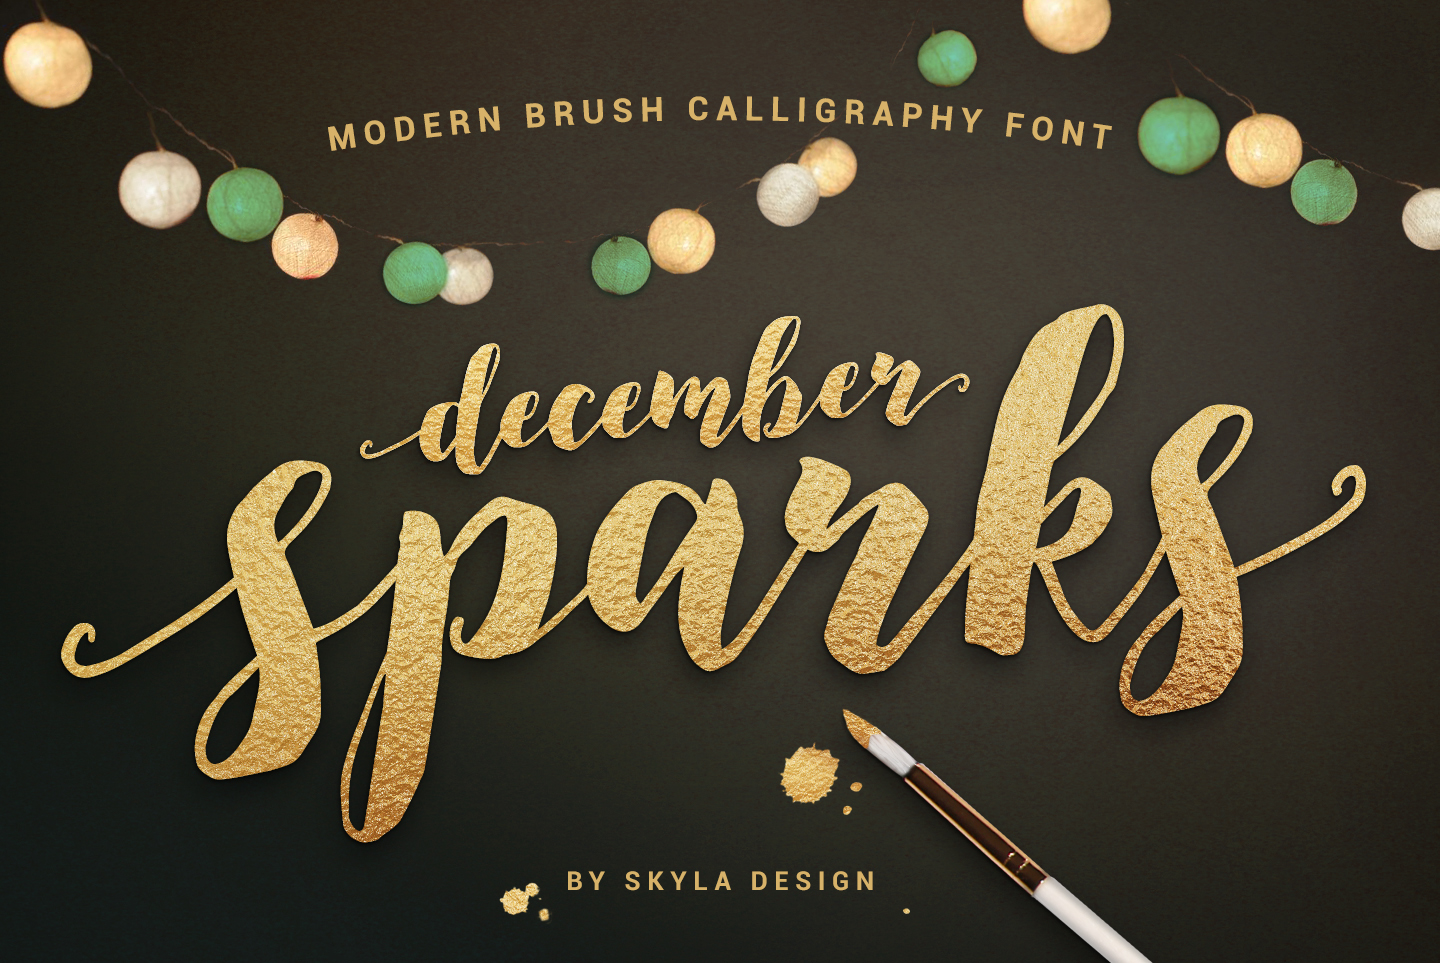 Modern brush calligraphy font, December Sparks example image 1